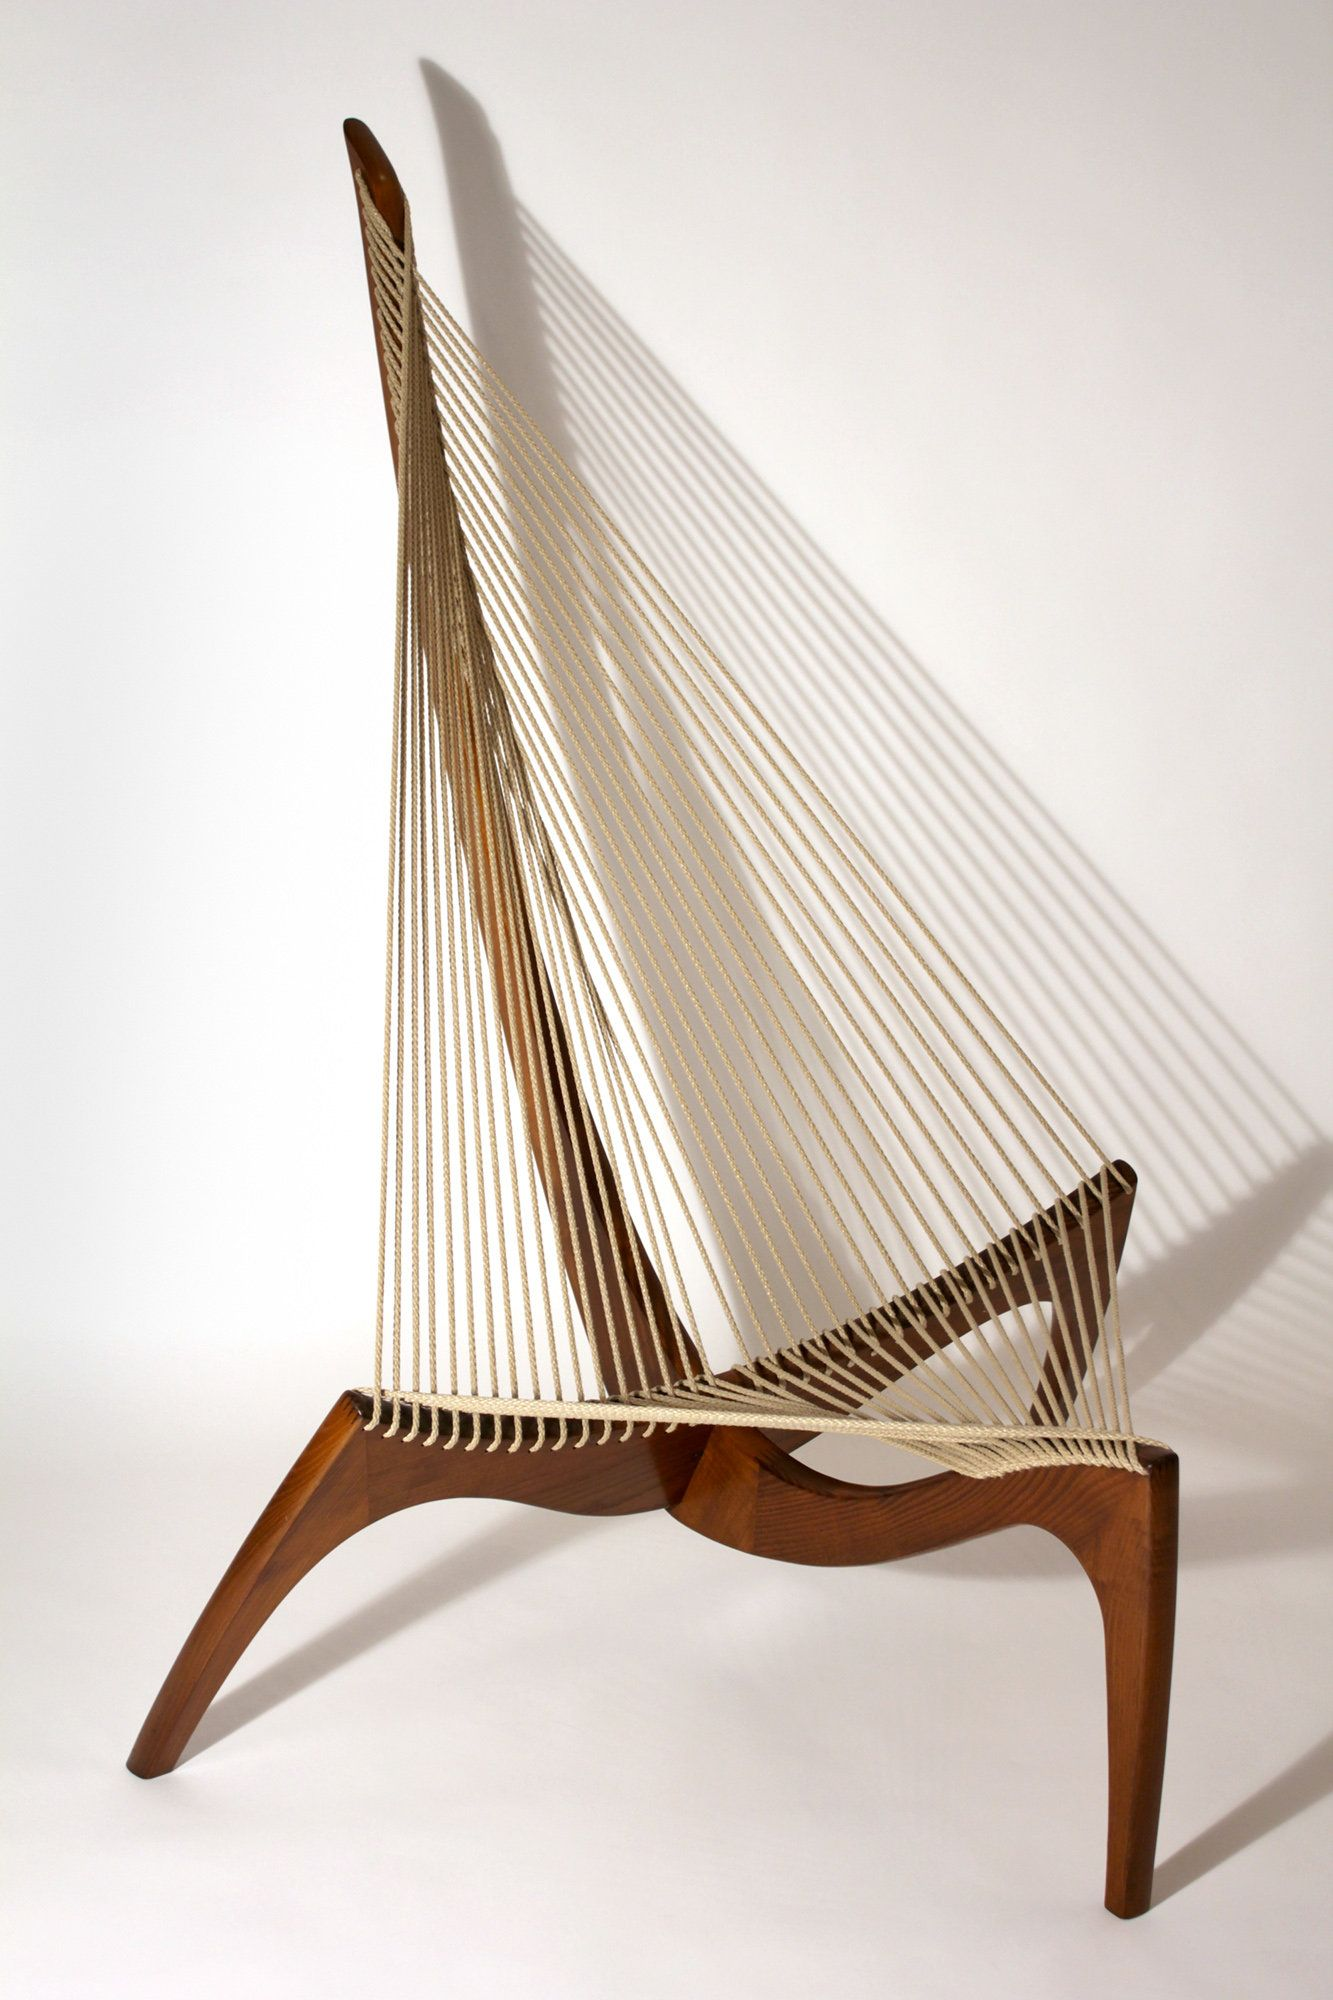 Vintage Harp Chair By Jorgen Hovelskov #modern #abstract #chair